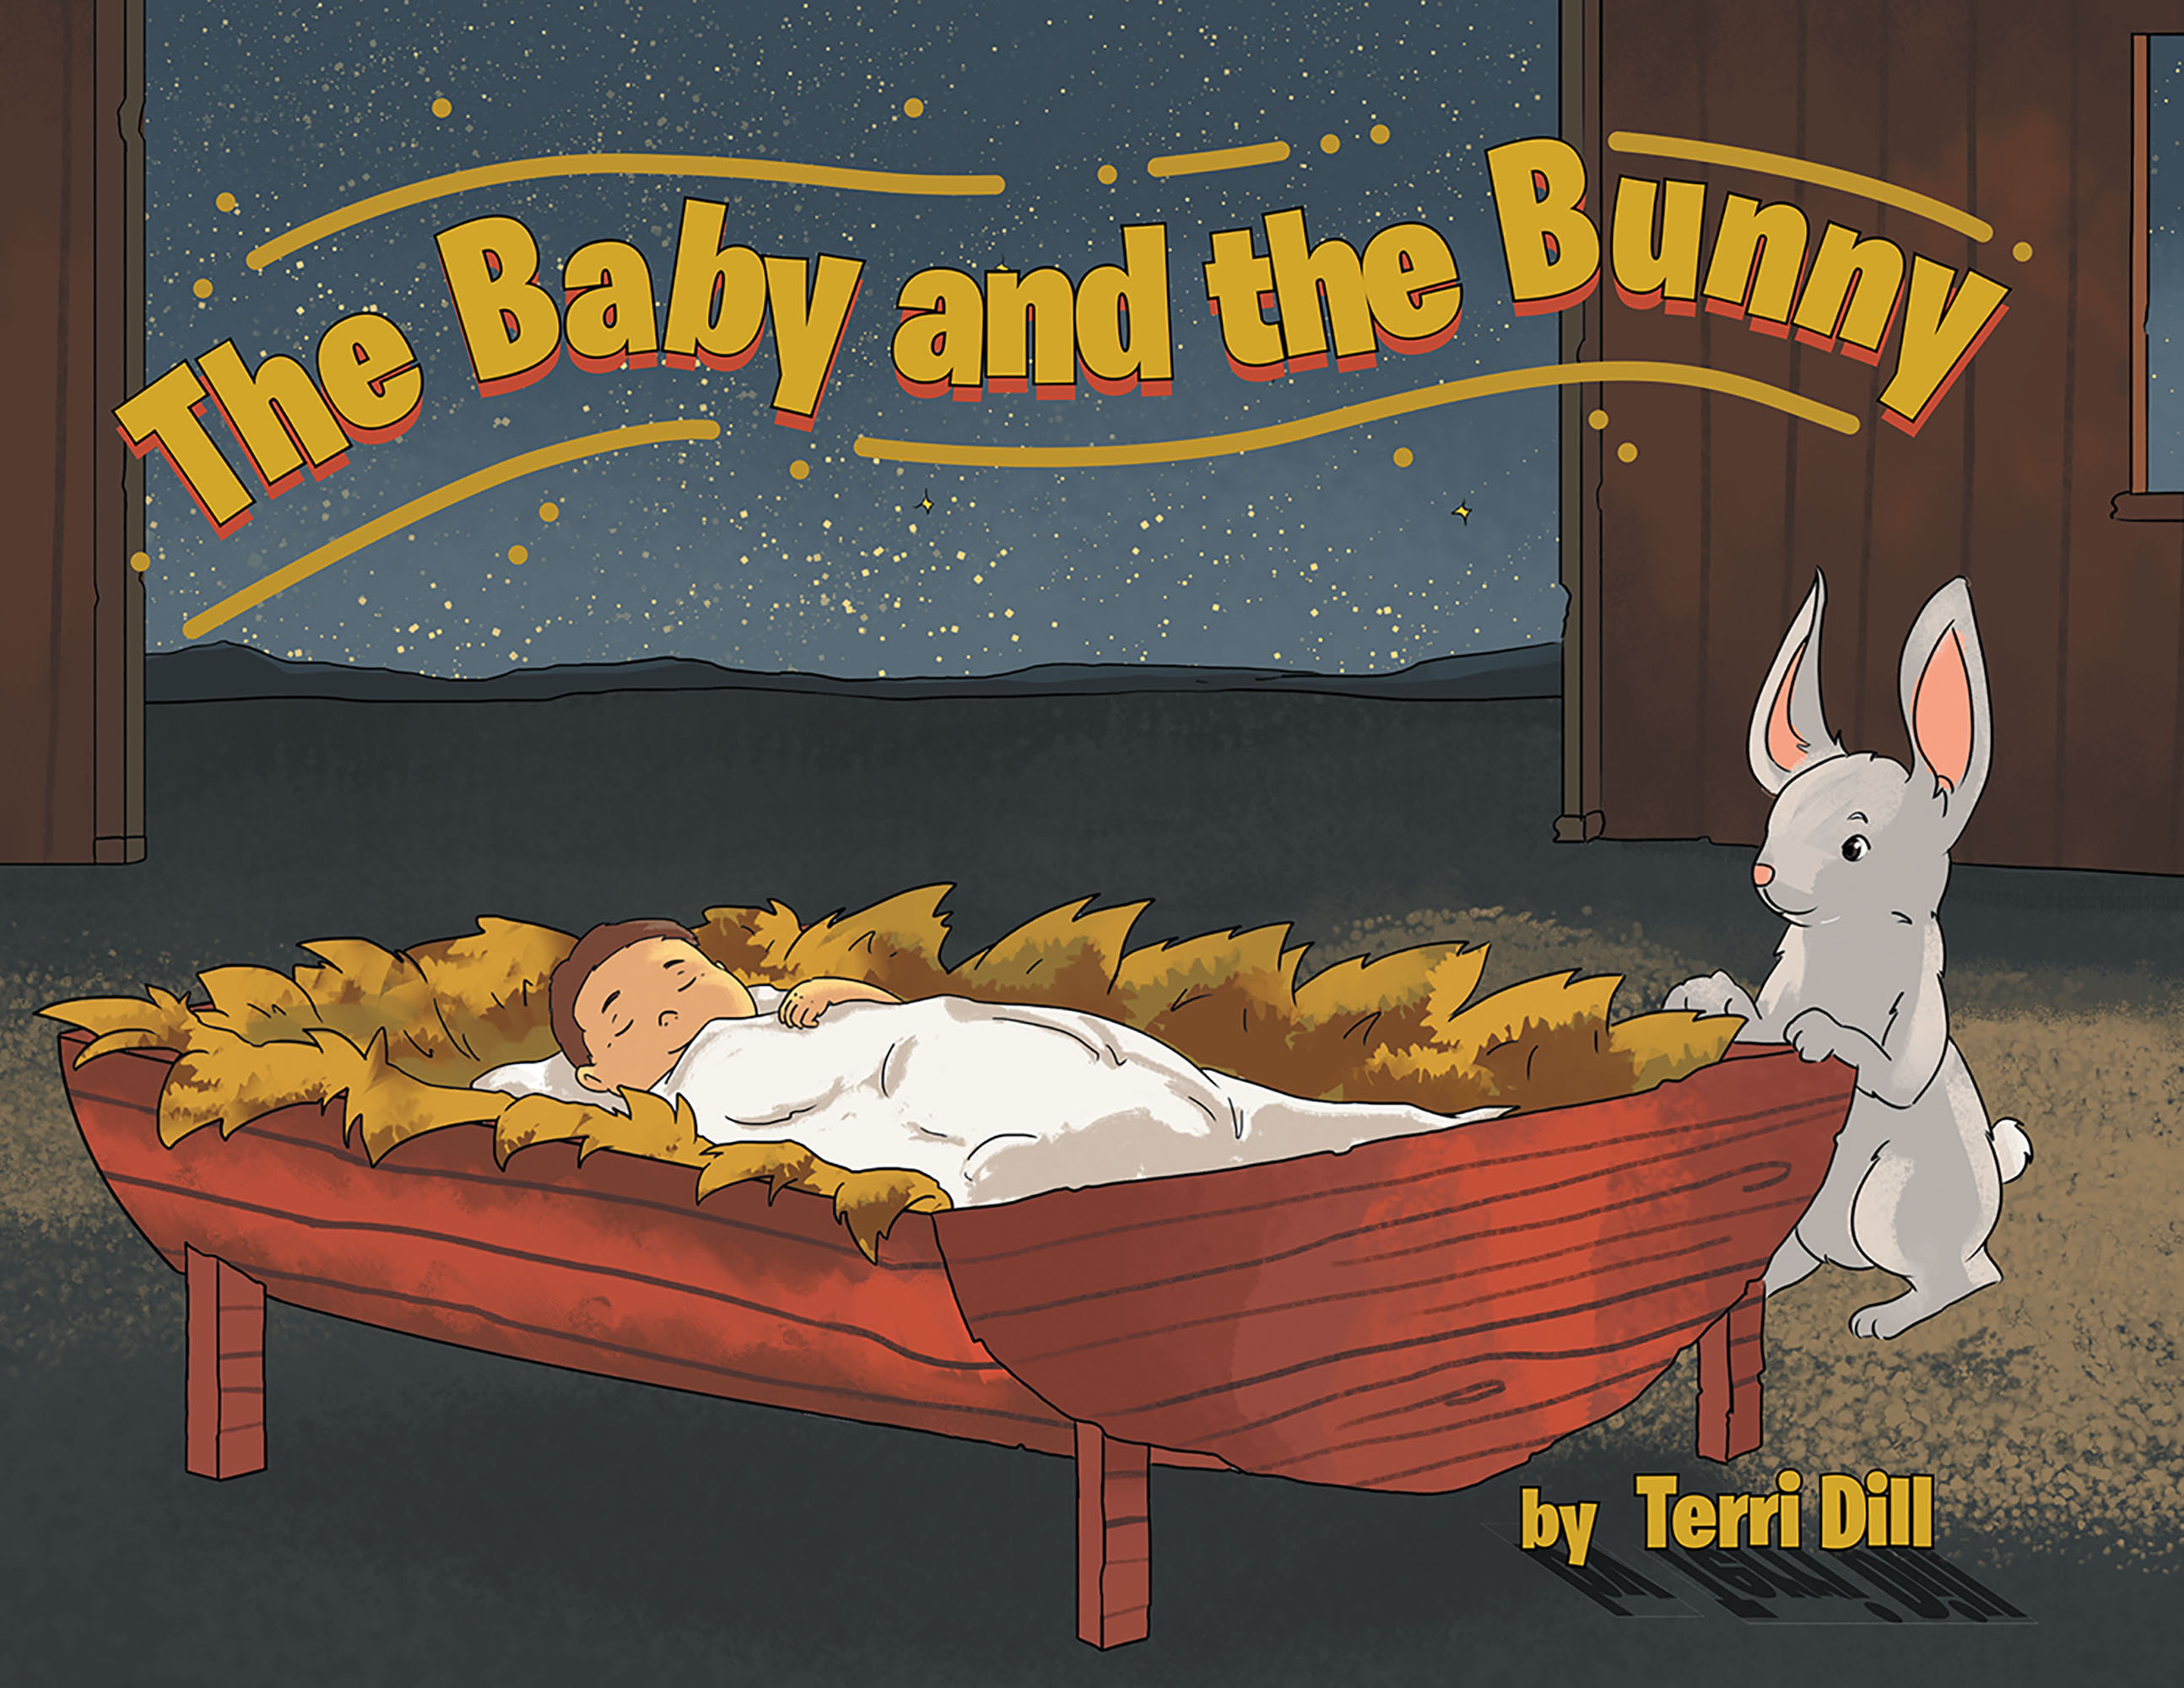 The Baby And Bunny